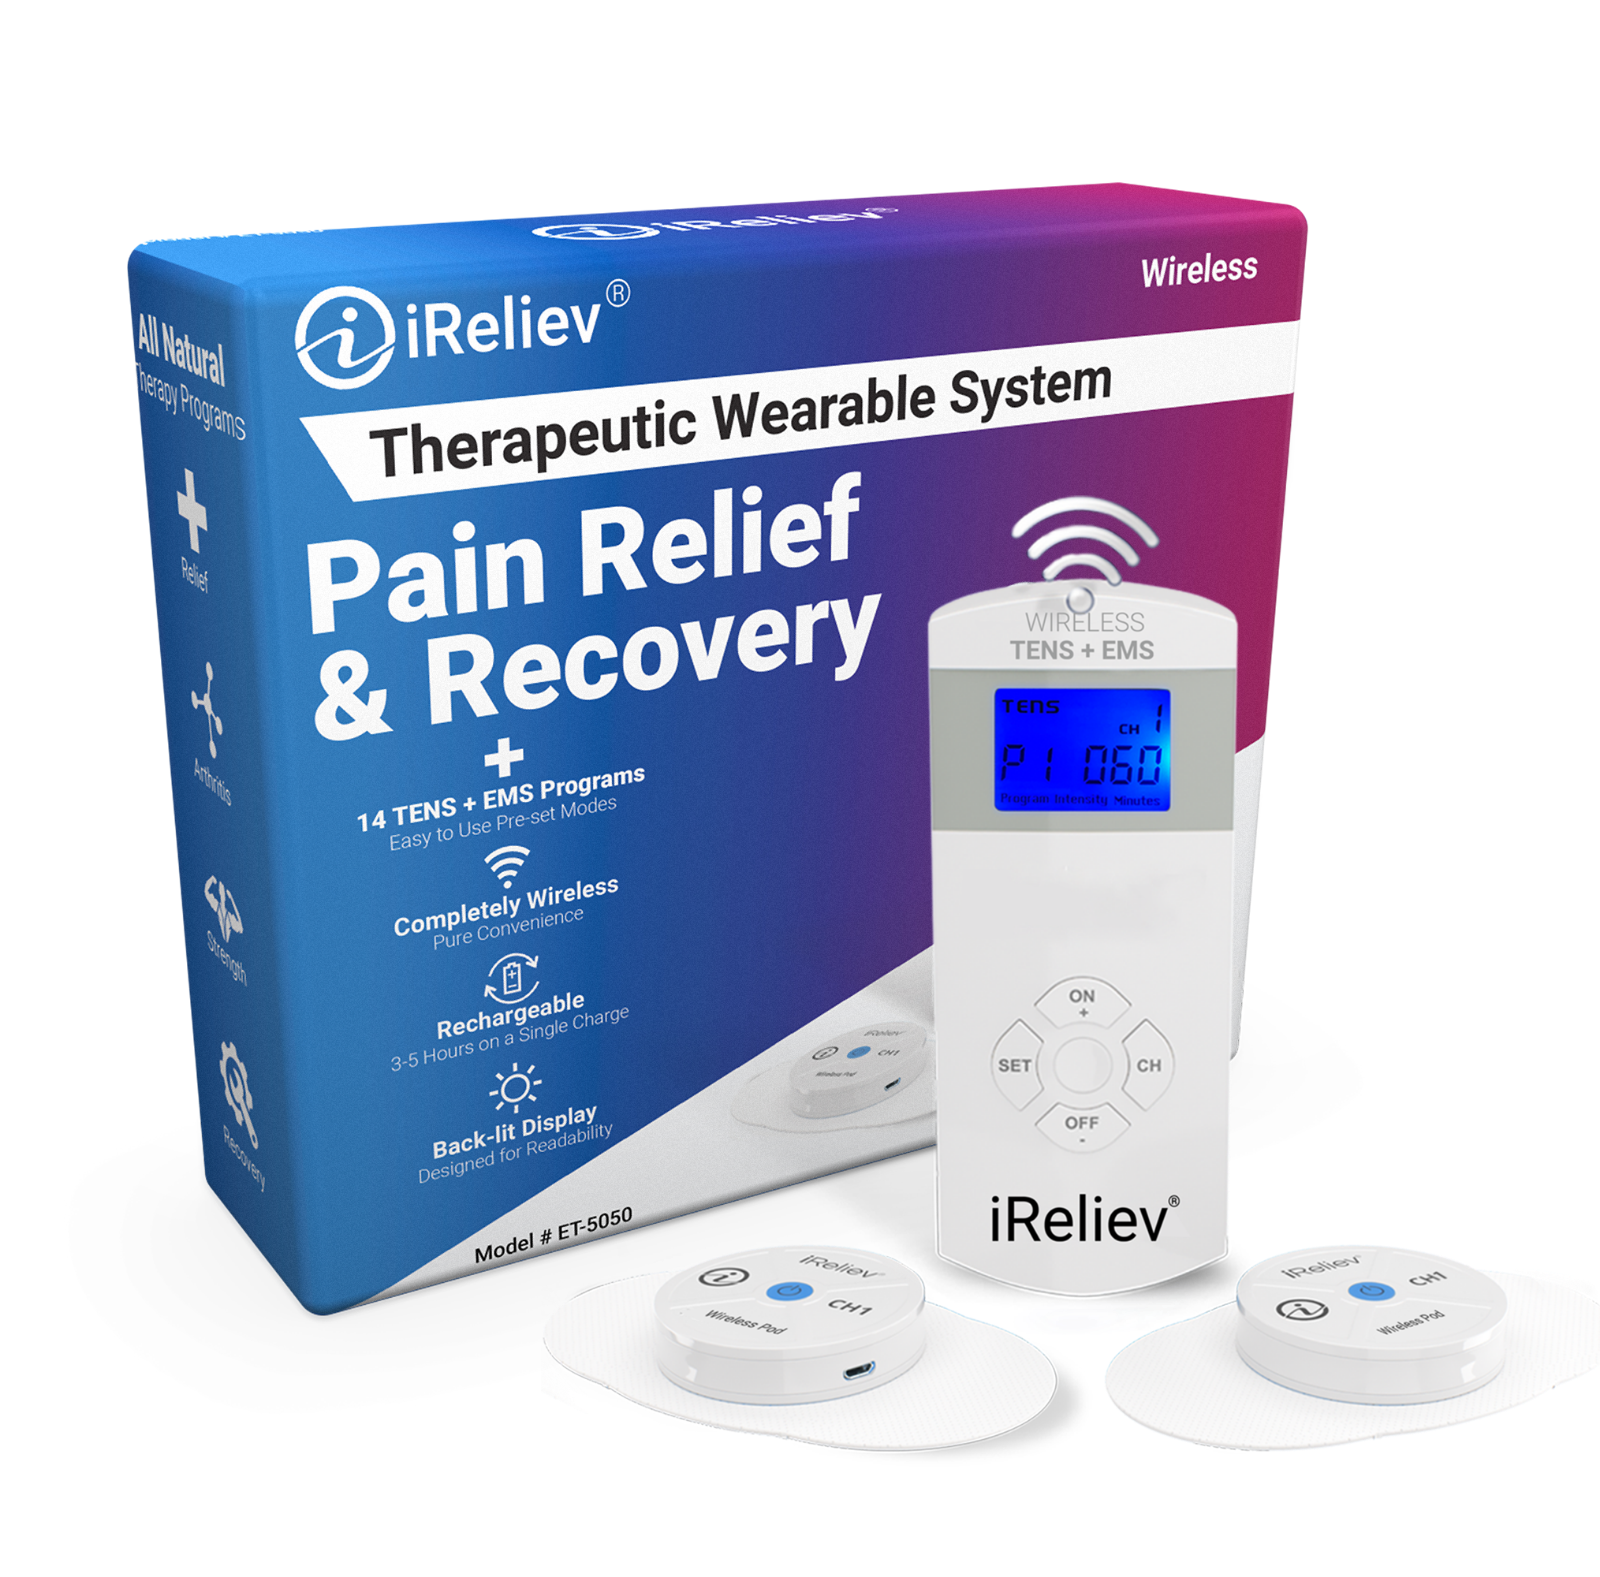 wireless unit ems therapeutic wearable system et